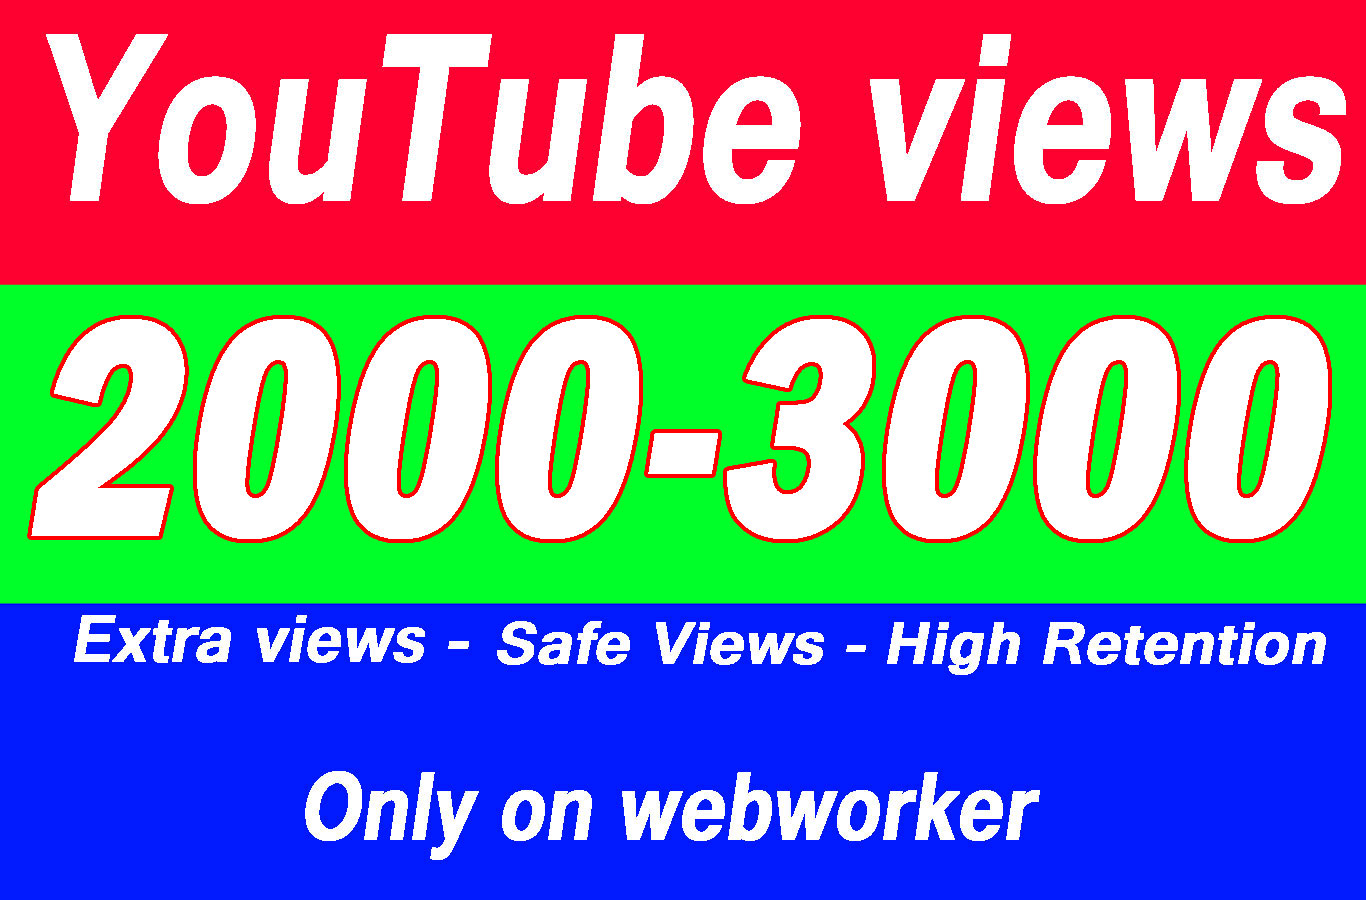 2000 To 3000 YouTube views with extra service 1k 2k 3k 4k 5k 6k 7k 8k 9k 10K 15K 20K 25K 30K 50K 100K Or 1000 3000 4000 5000 6000 7000 8000 9000 10000 15000 20000 50000 100,000 100000 150000 Views